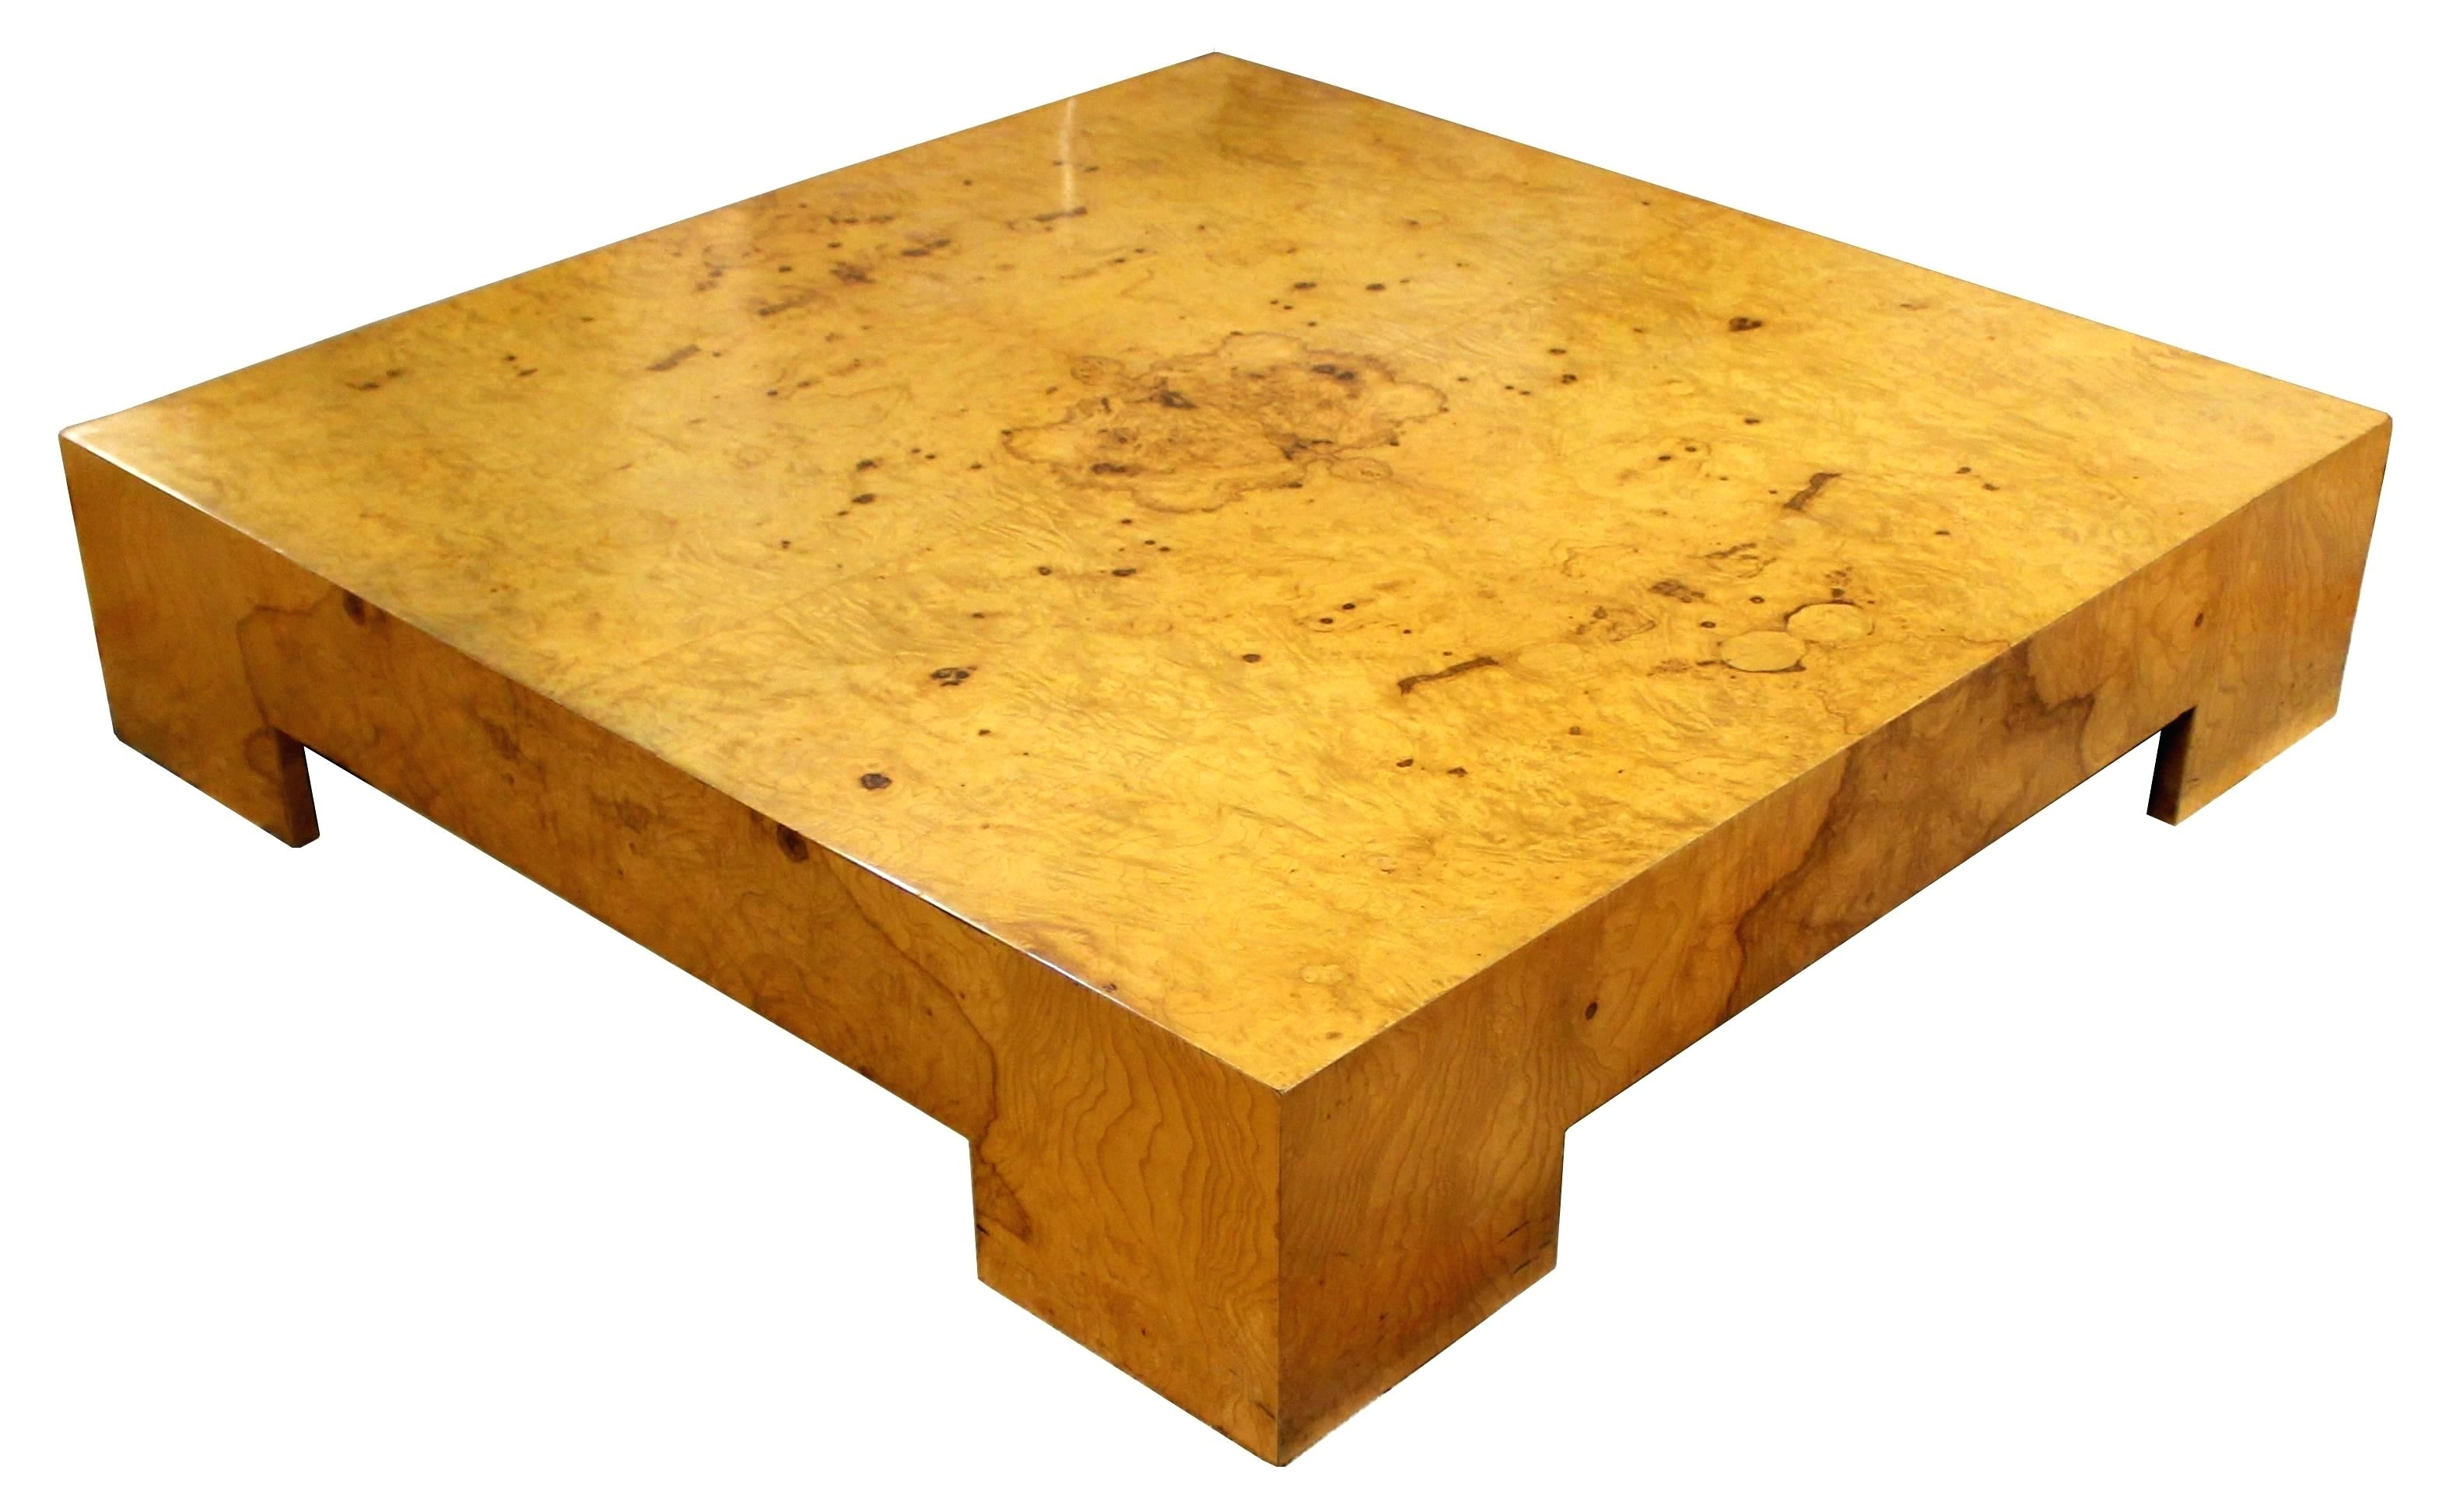 Burled Wood Coffee Table Wisteria Oslo Burl Wood Veneer Collection with regard to Oslo Burl Wood Veneer Coffee Tables (Image 13 of 30)